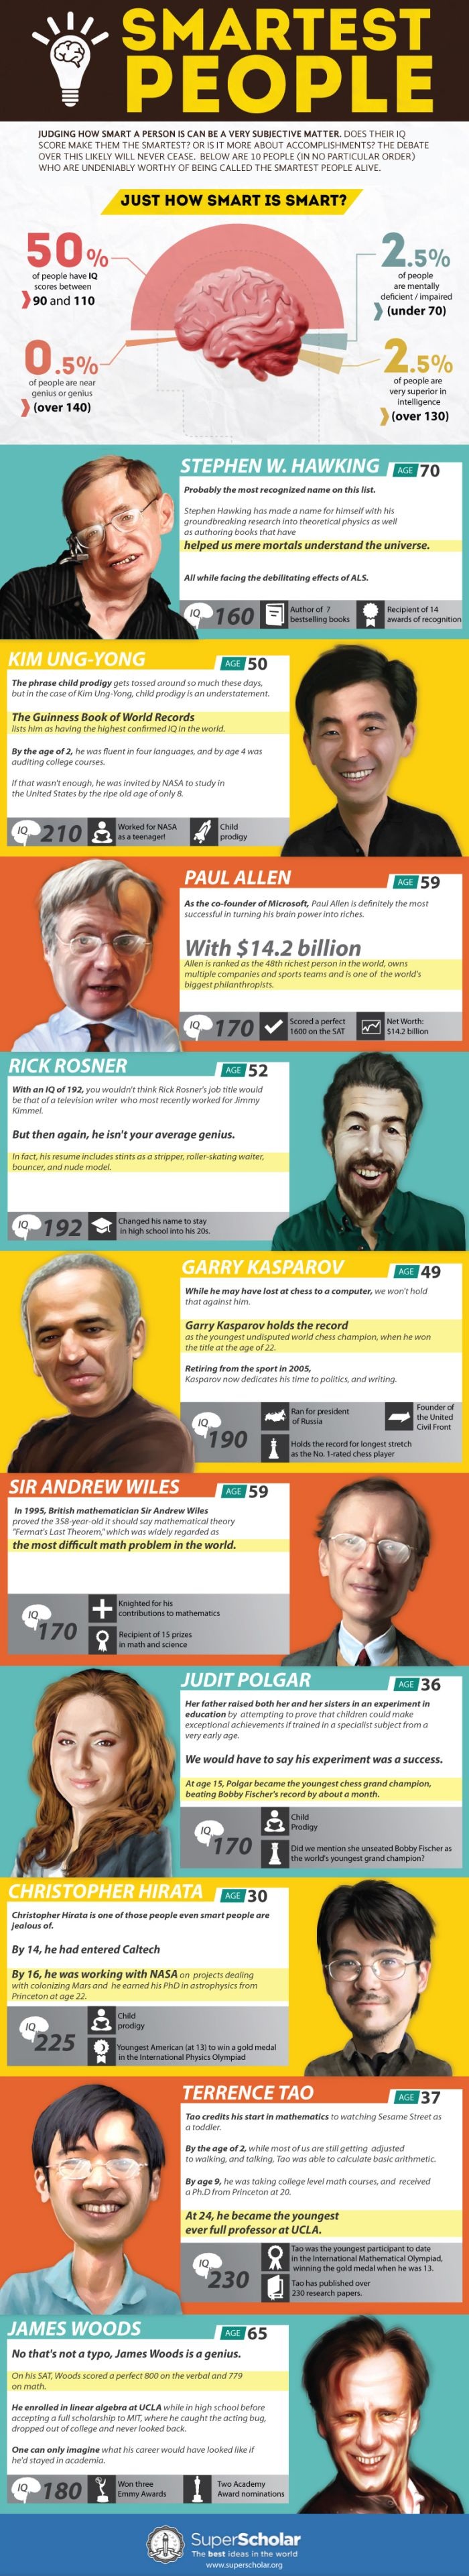 Smartest People (infographic)